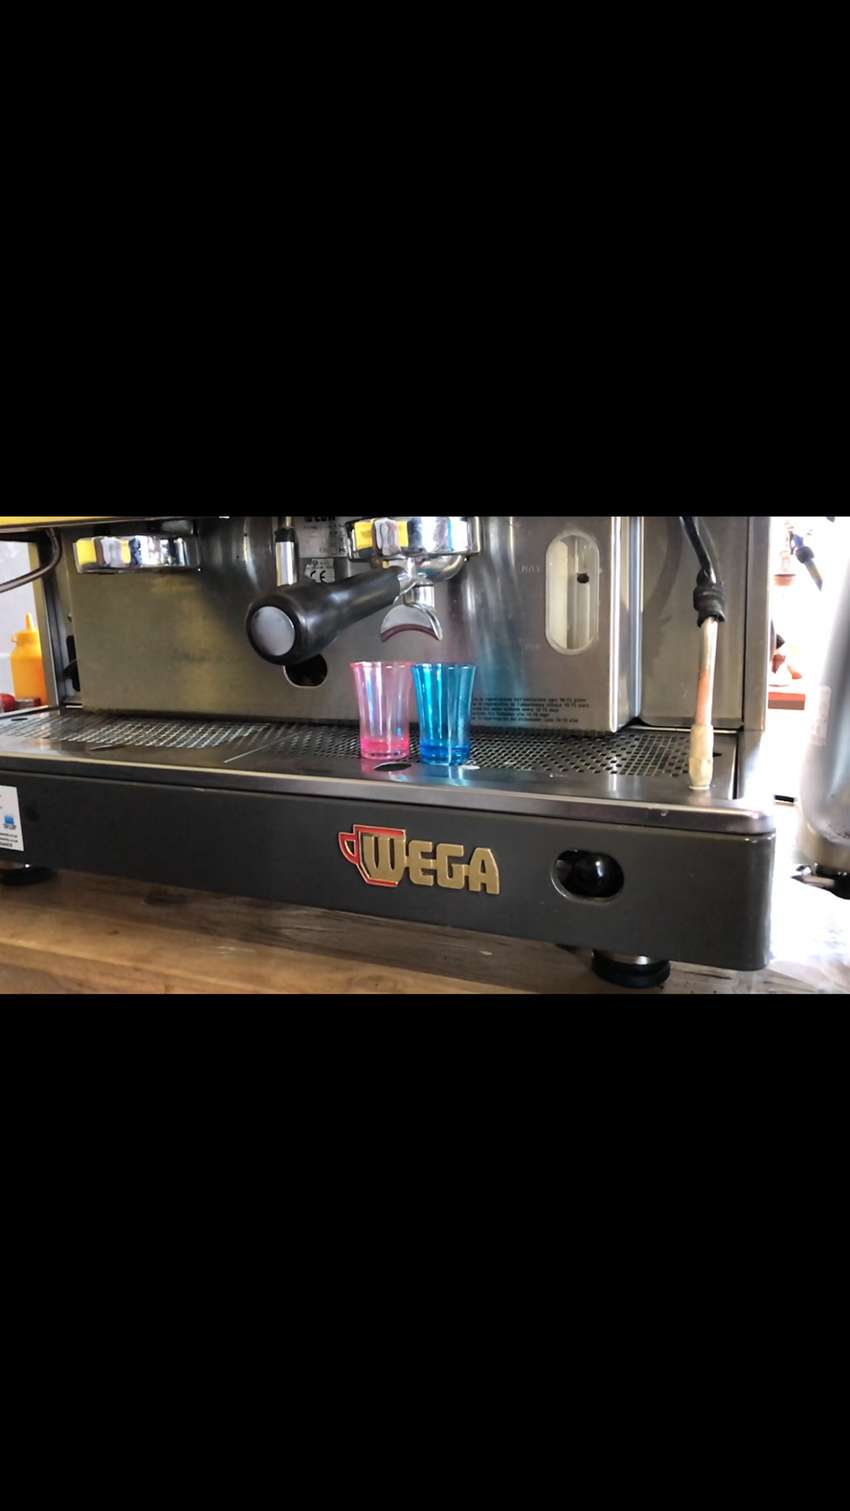 Wega Coffee Machine 0